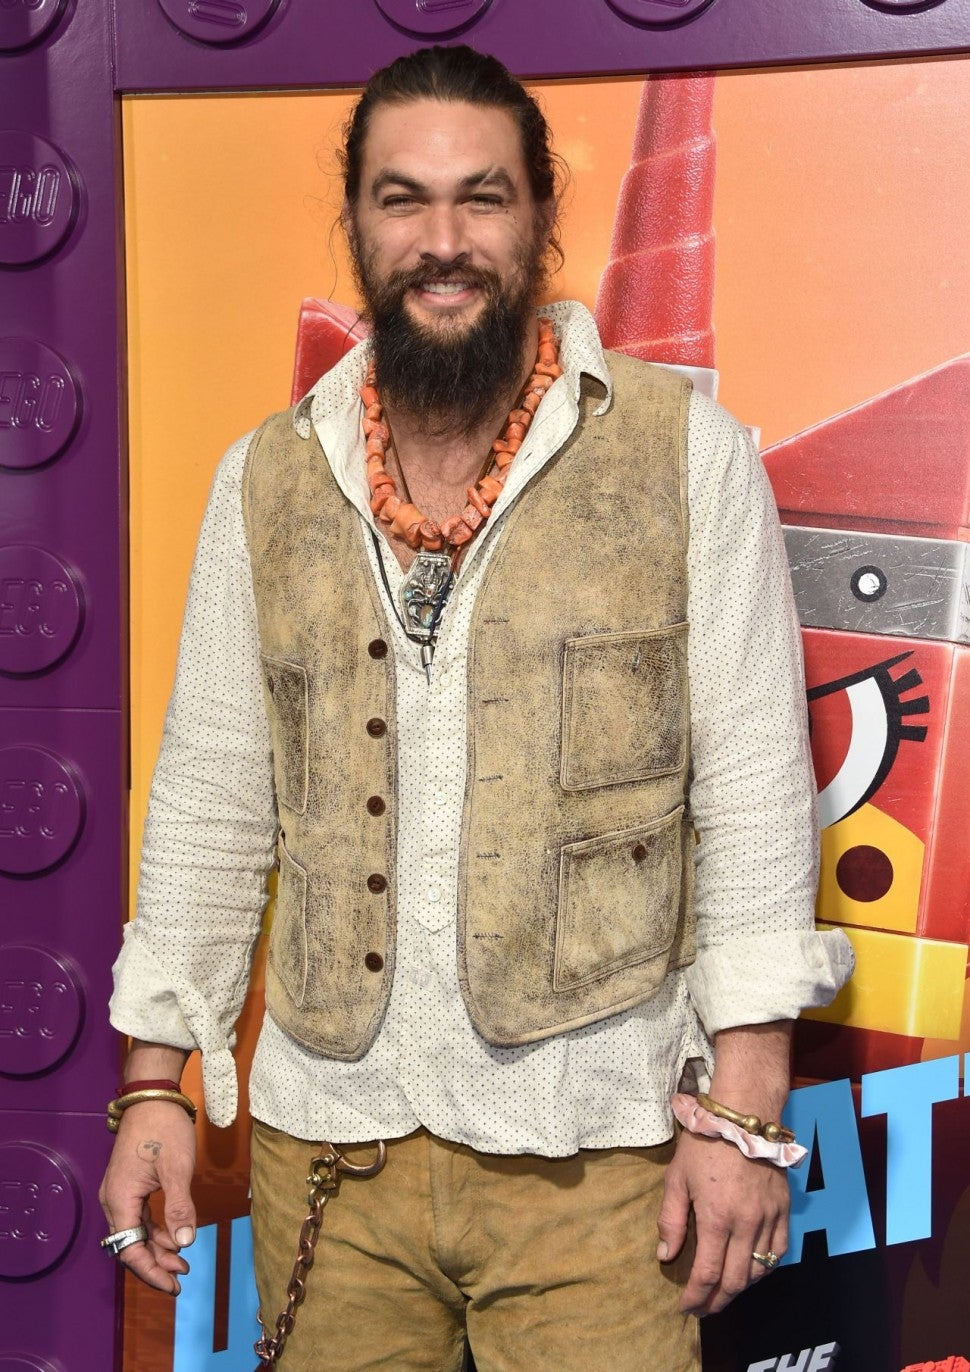 Jason Momoa at Lego Movie 2 premiere